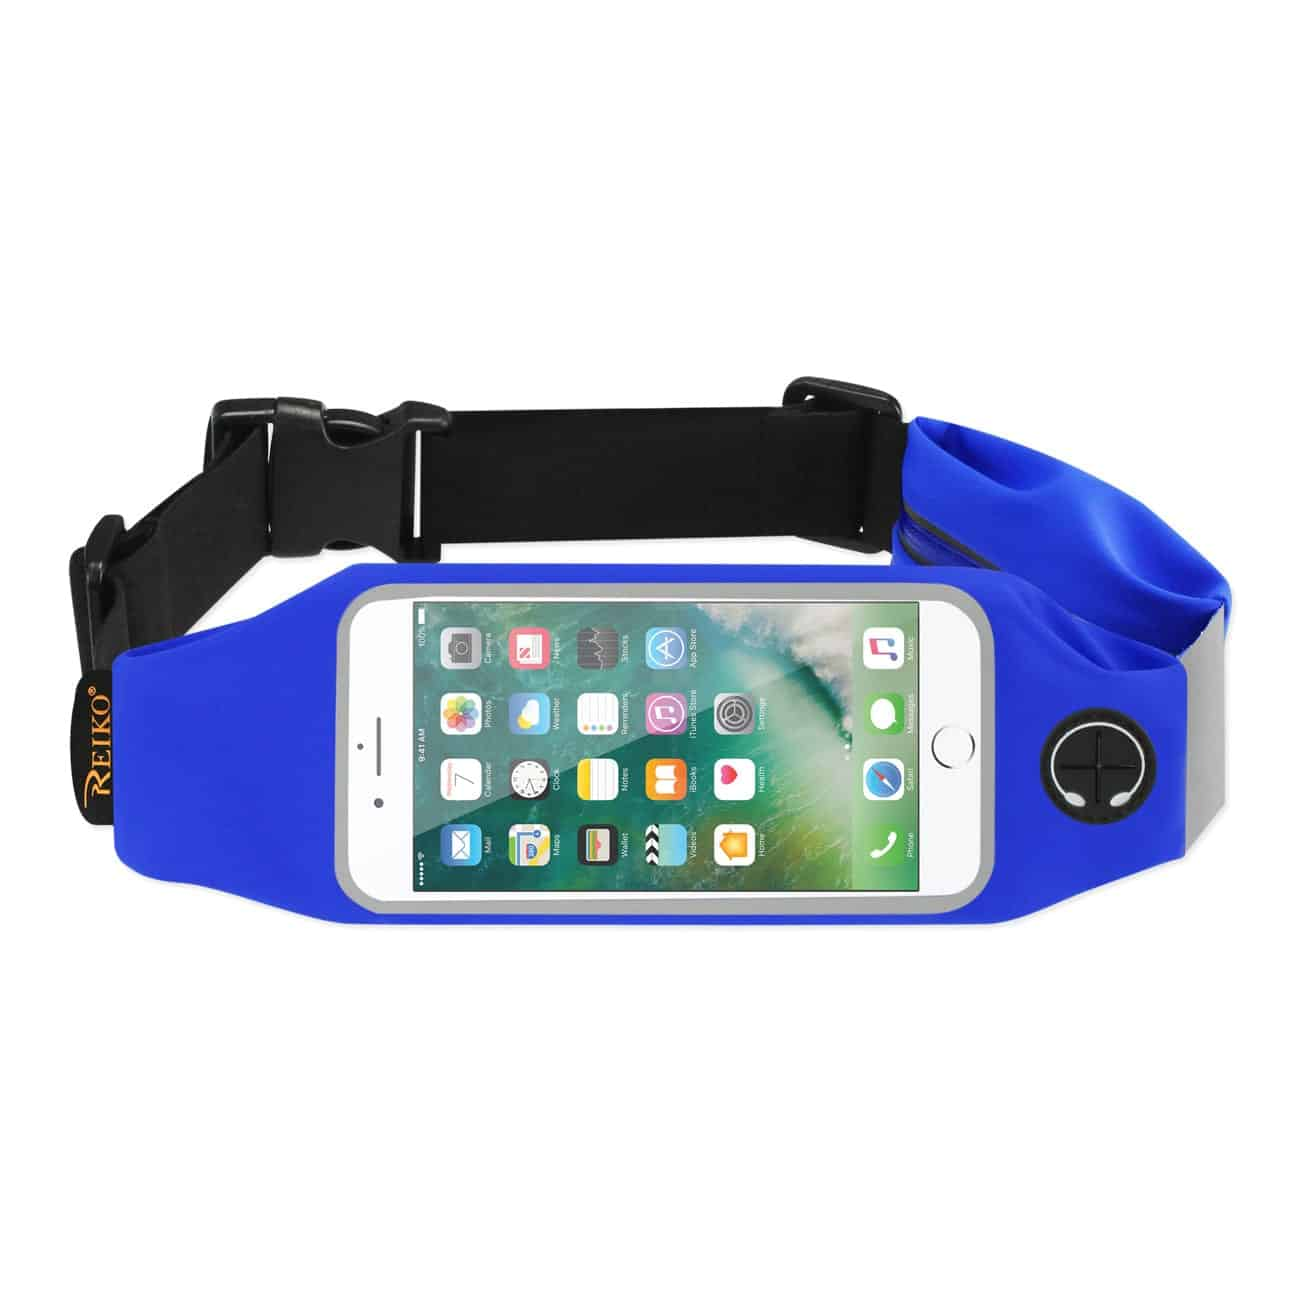 RUNNING SPORT BELT FOR IPHONE 7 PLUS/ 6S PLUS OR 5.5 INCHES DEVICE WITH TWO POCKETS IN BLUE (5.5x5.5 INCHES)